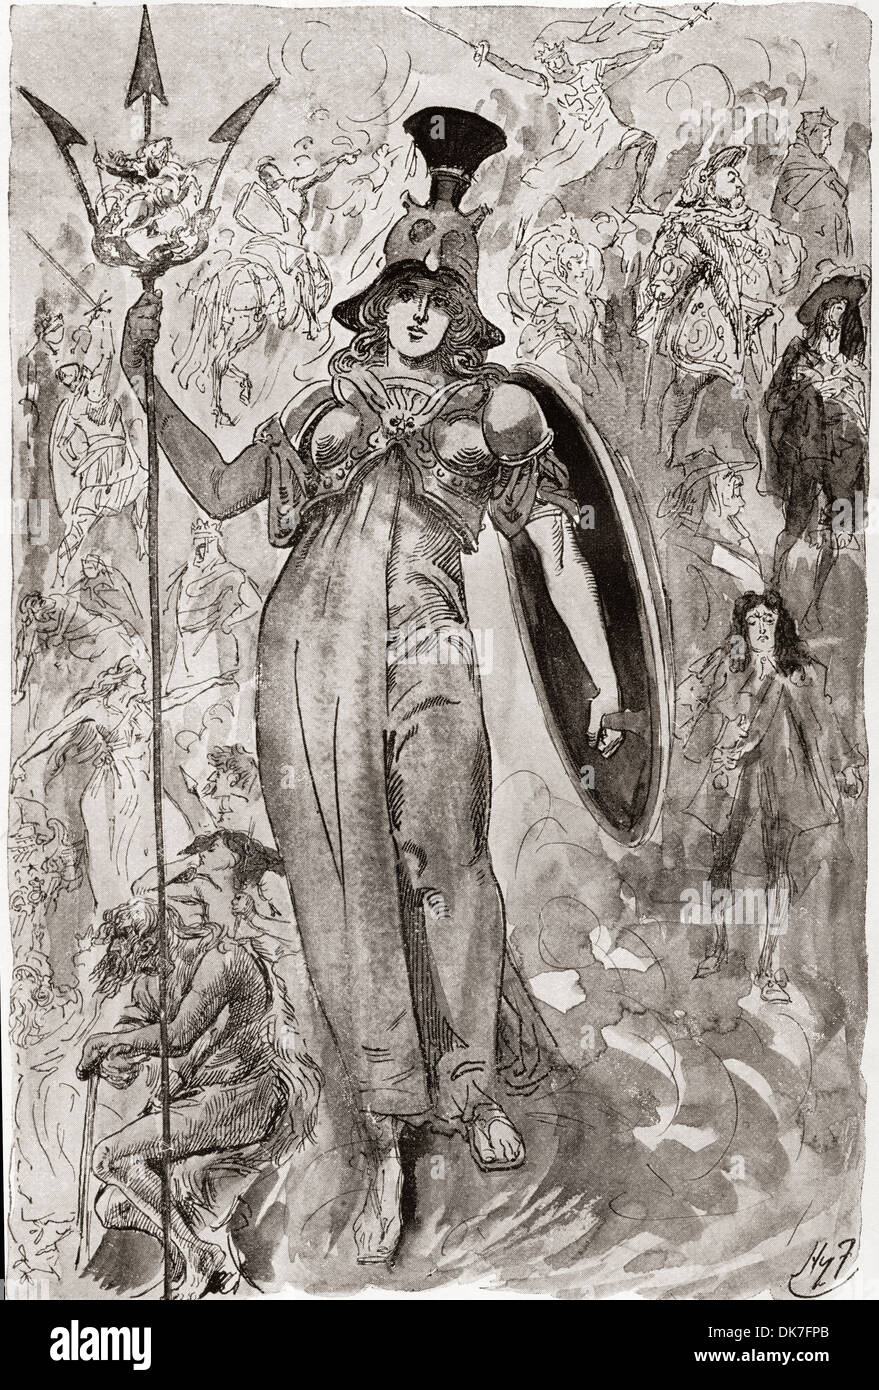 The Pageant of English History. Frontispiece by Harry Furniss for the Charles Dickens book A Child's History of England. - Stock Image